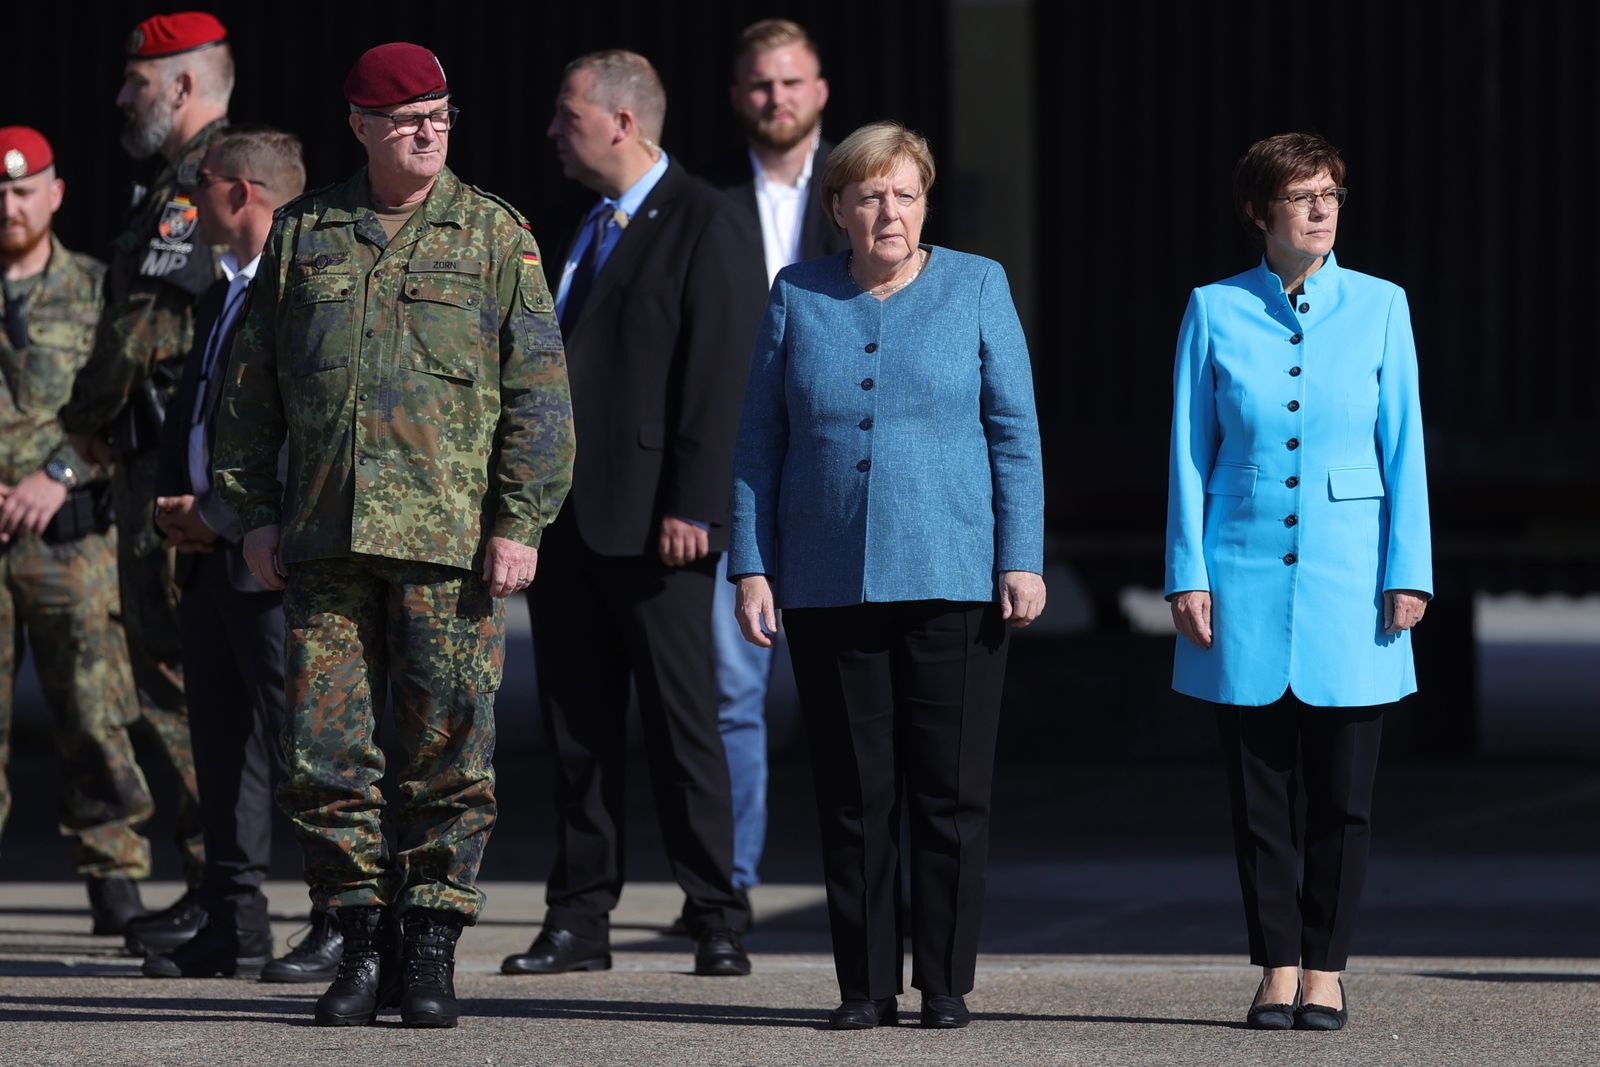 German chancellor attends muster for Kabul airlift